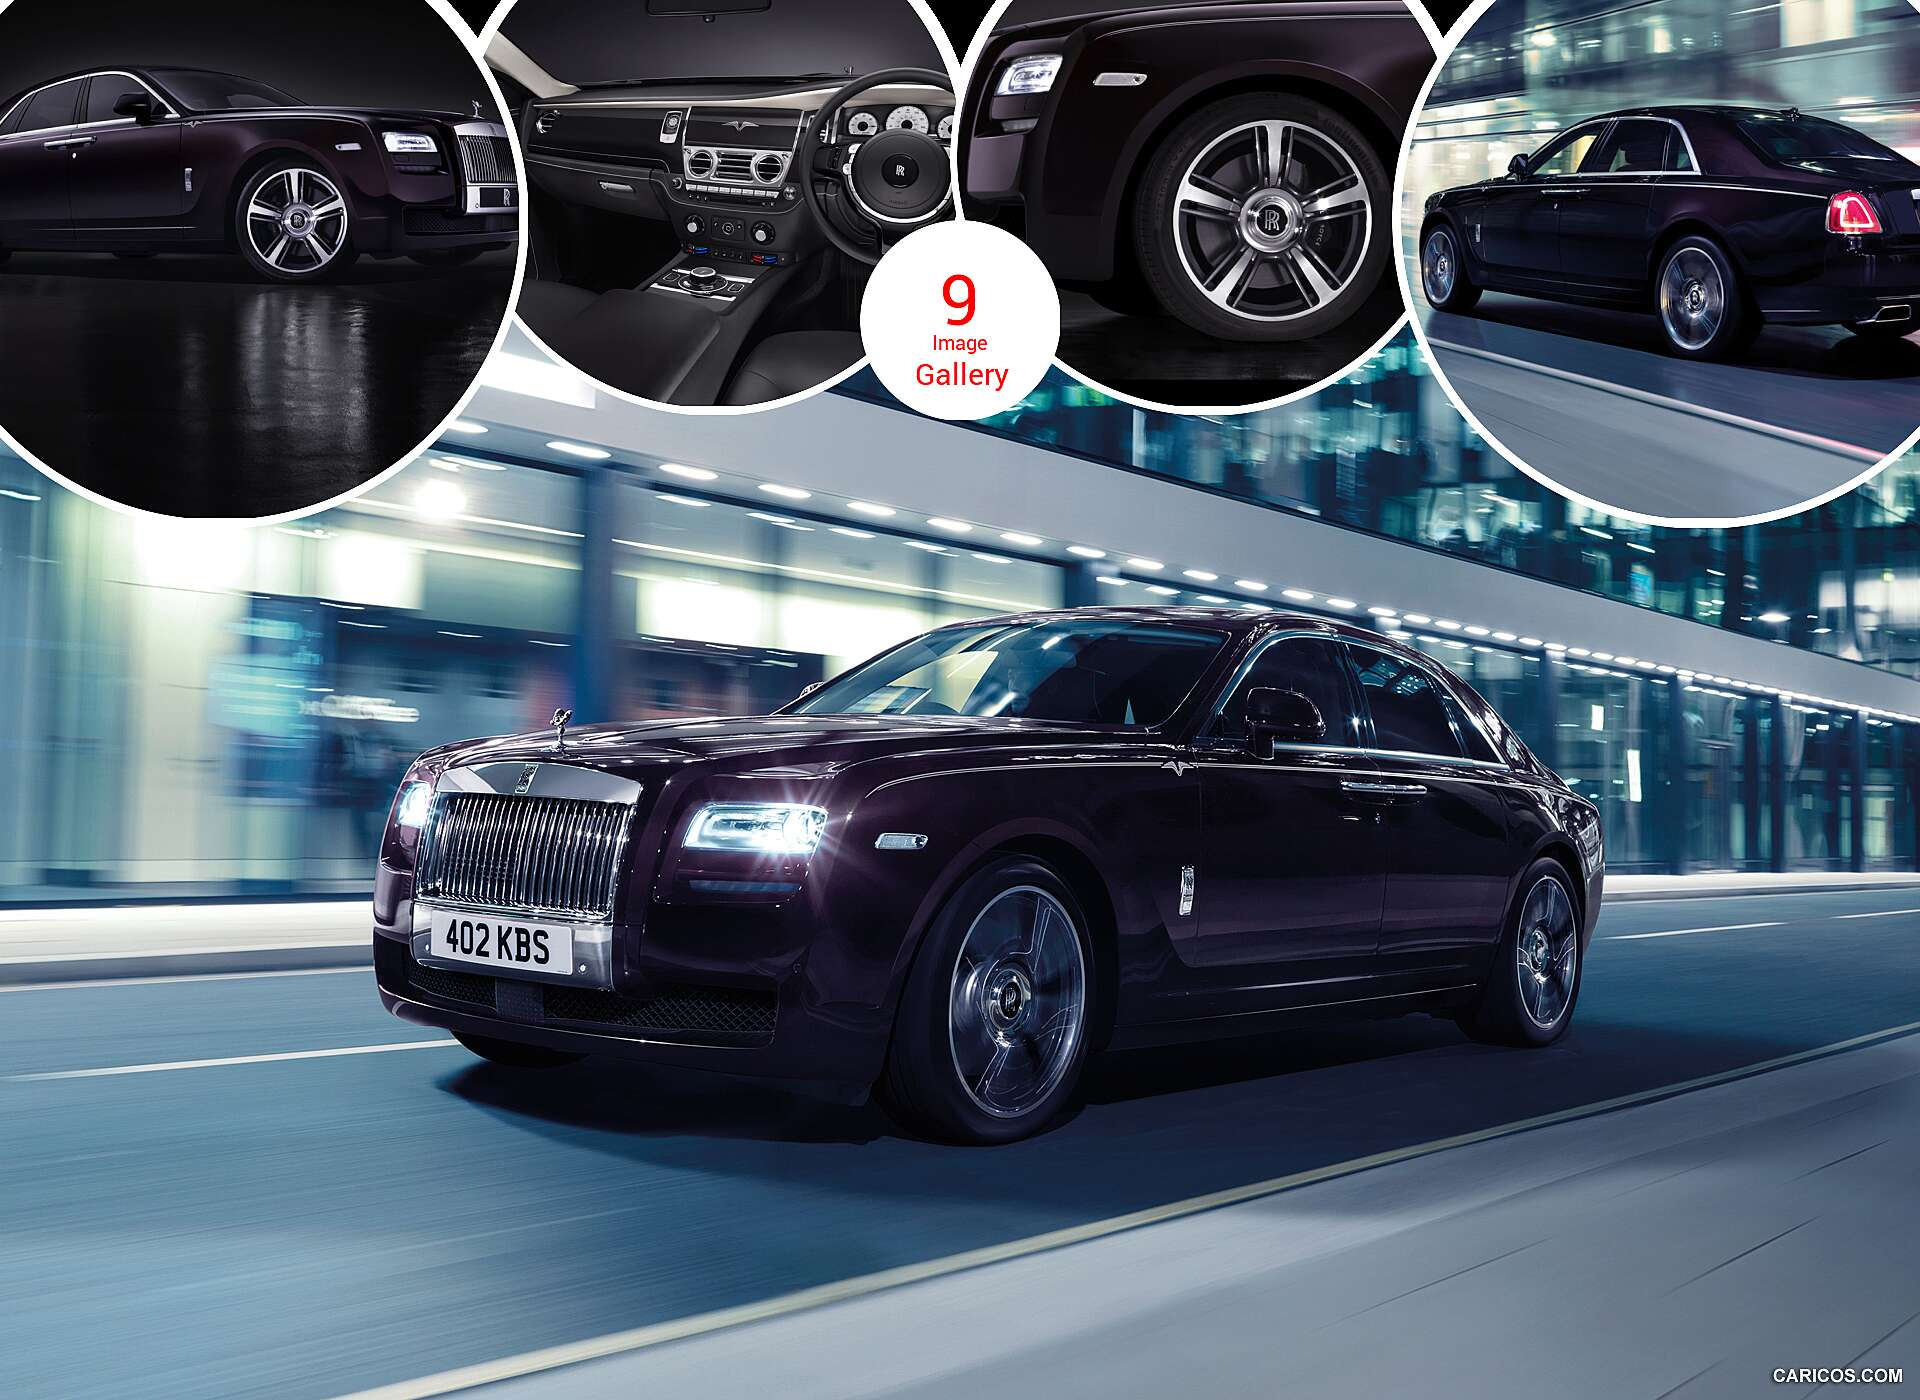 2015 Rolls-Royce Ghost V-Specification